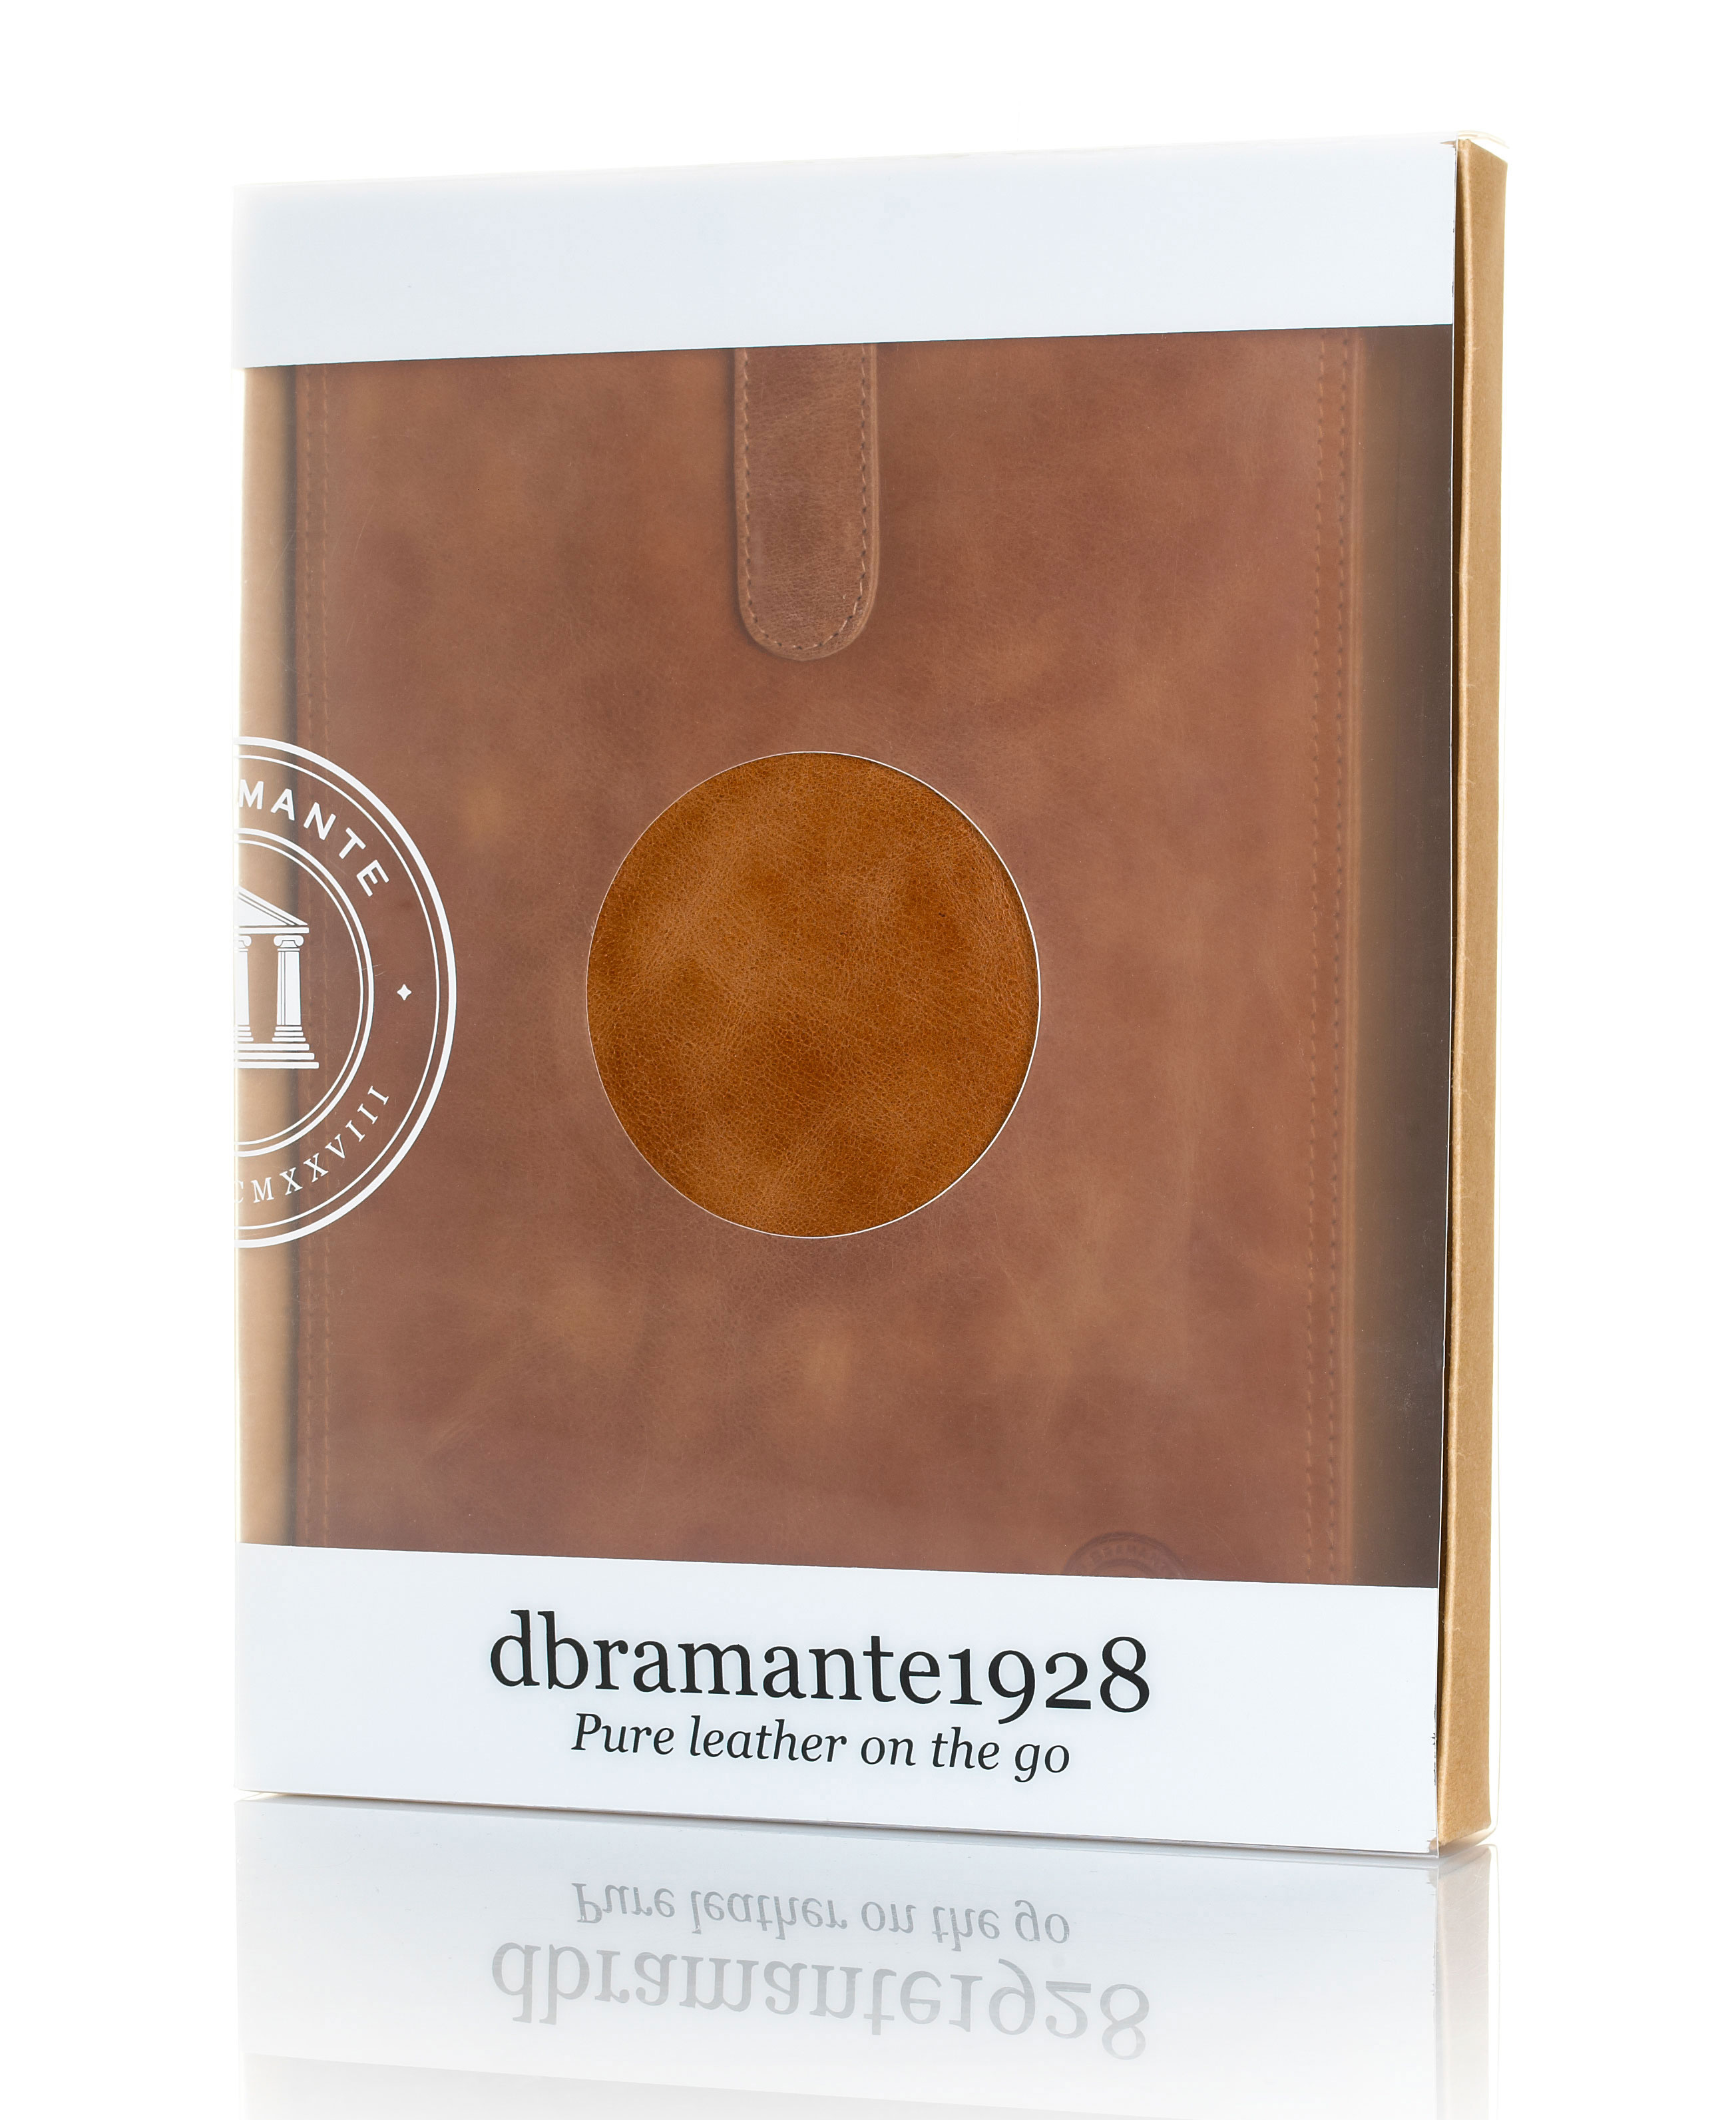 Pure leather on the go for electronic devices Packaging Design – Dbramante 1928